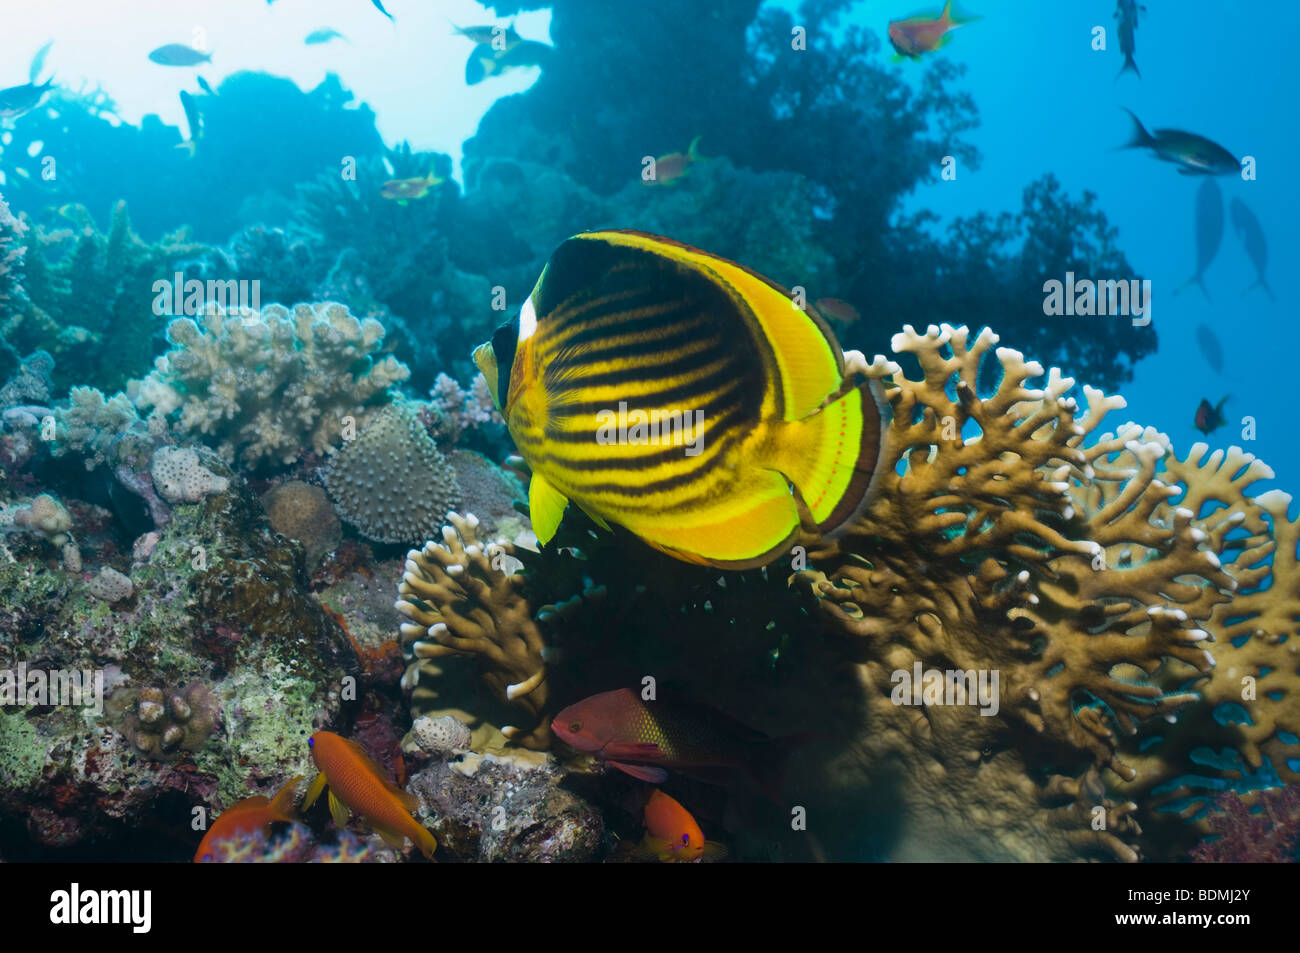 Red Sea raccoon butterflyfish (Chaetodon fasciatus) on coral reef with fire coral. Egypt, Red Sea. (Digital capture). - Stock Image